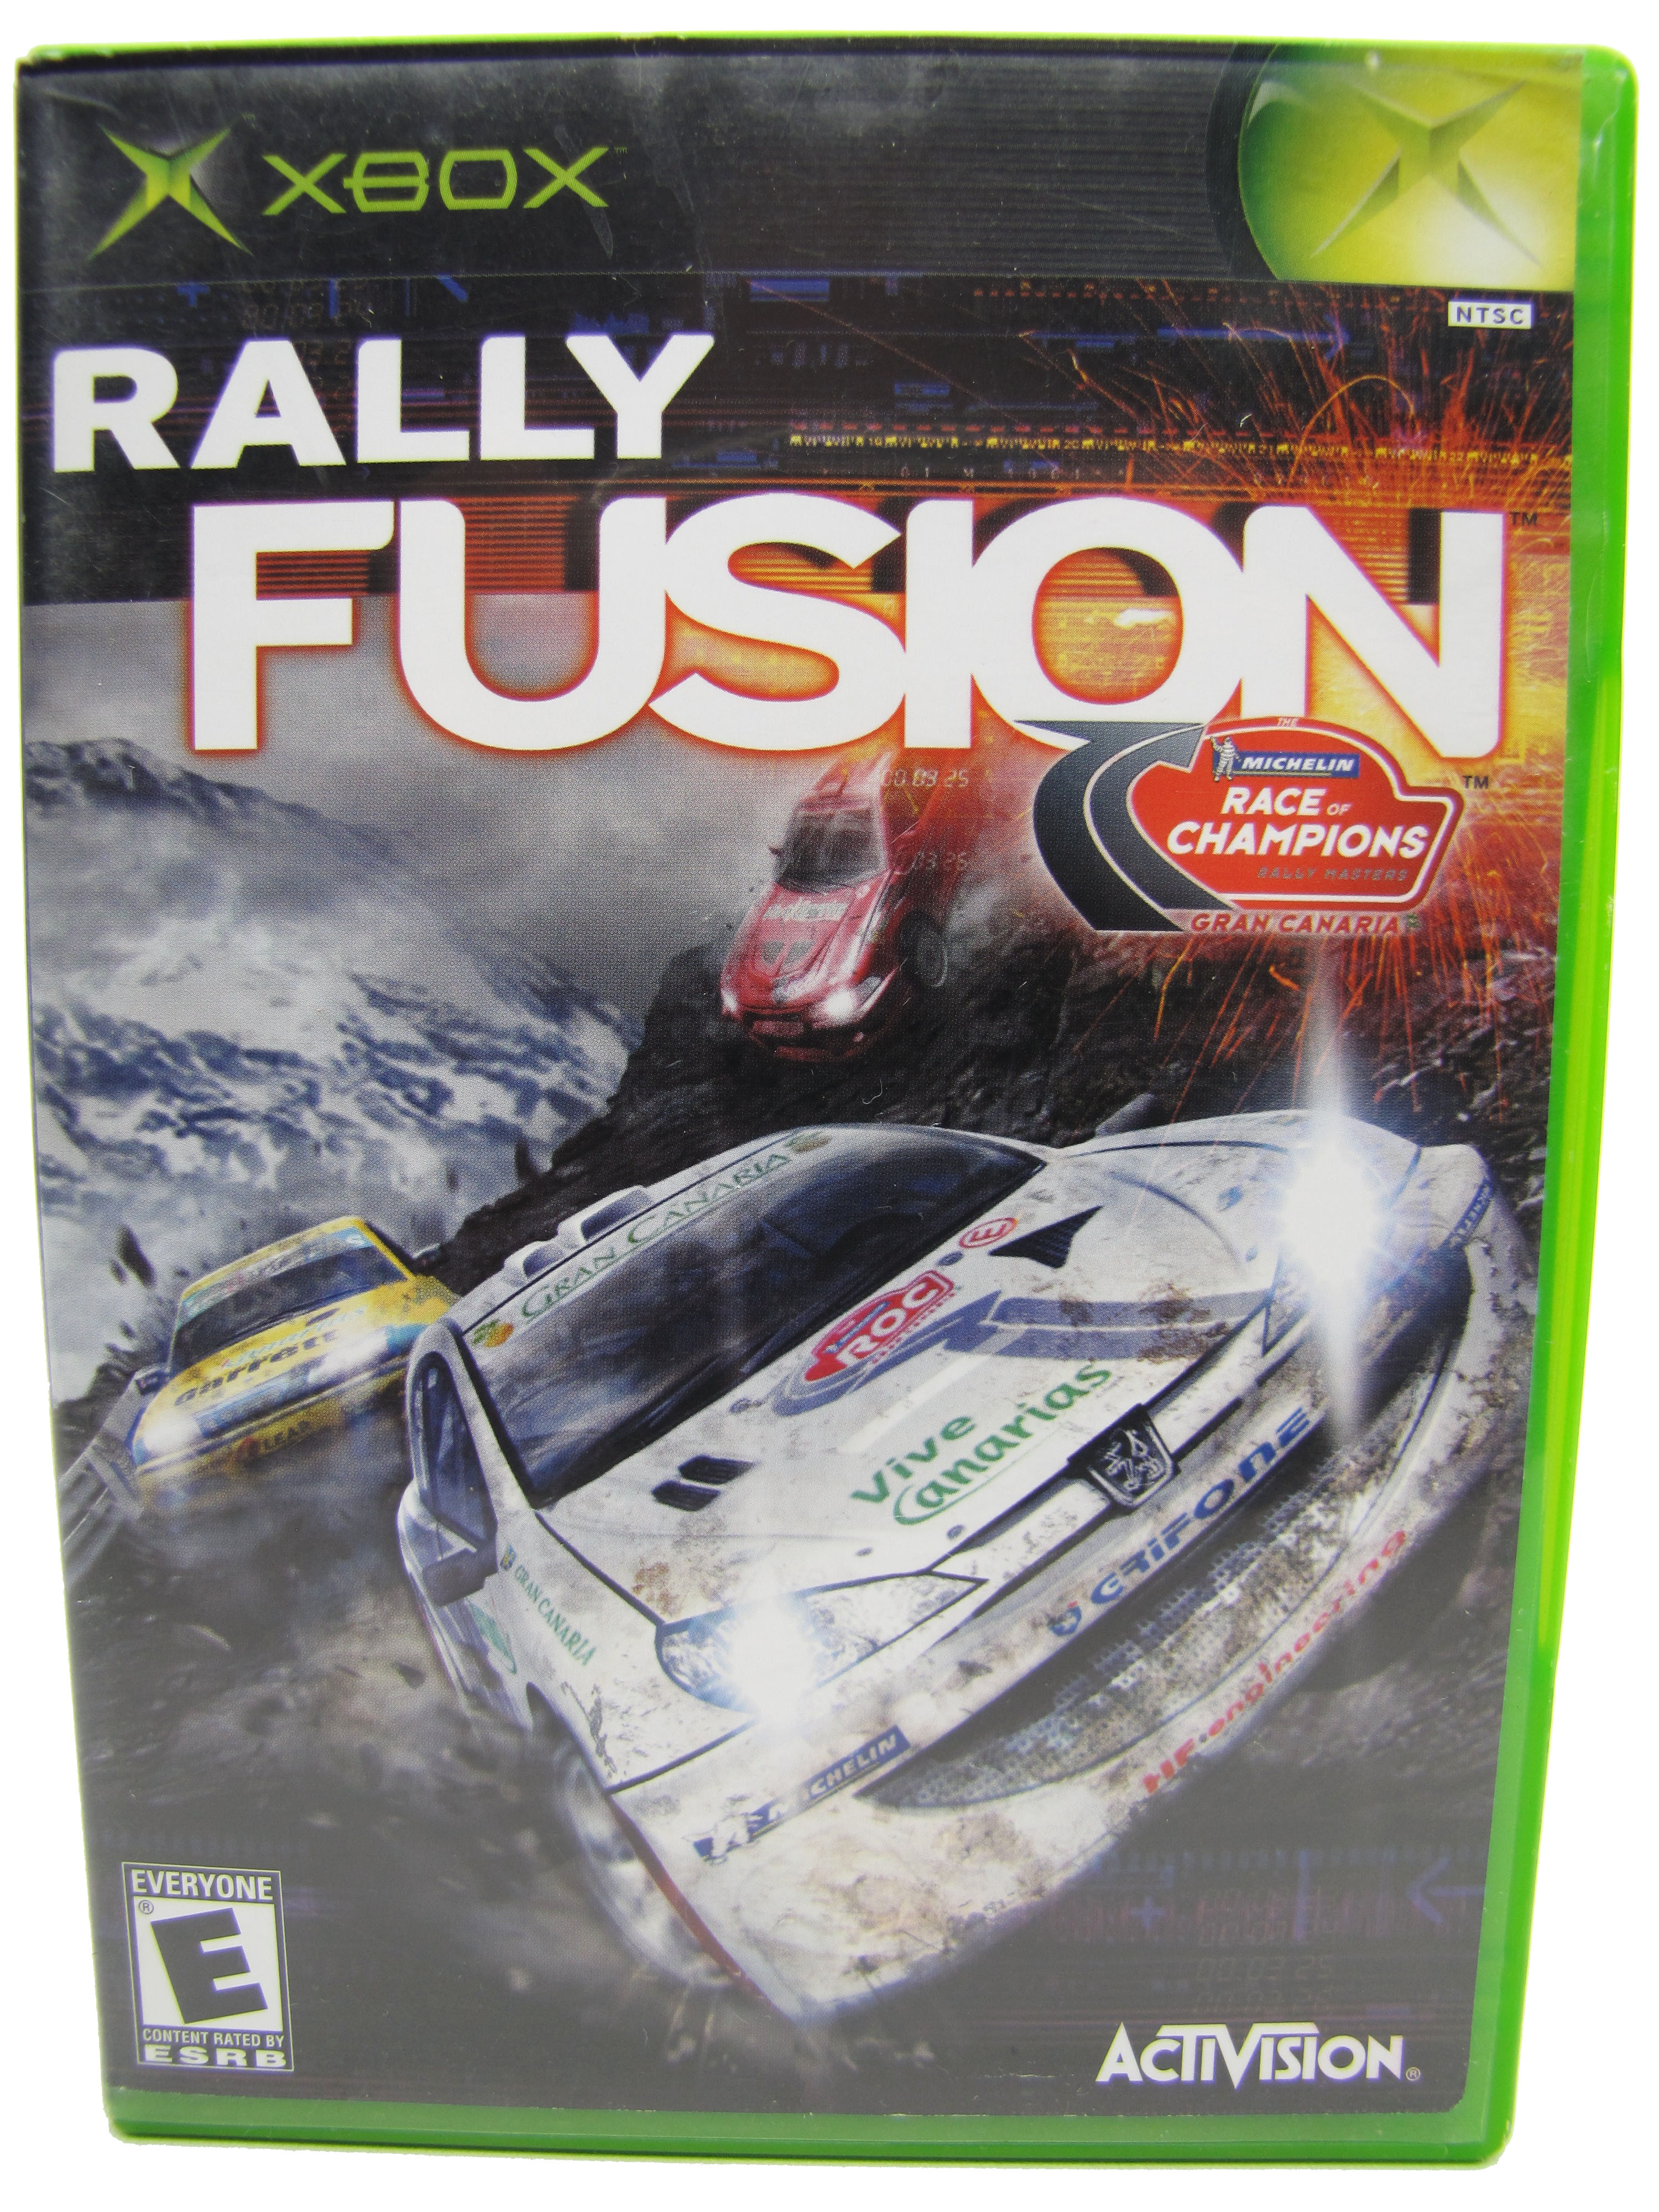 XBOX Rally Fusion: Race of Champions